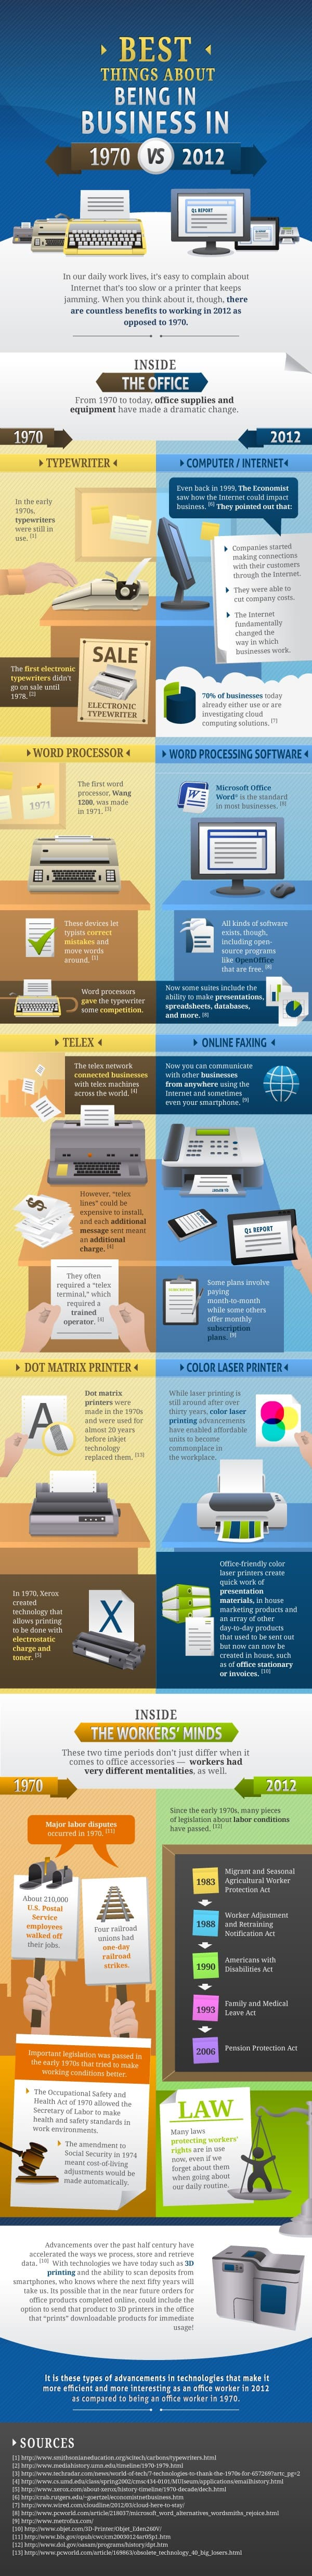 Best Things About Being in Business in 2012 vs 1970 infographic